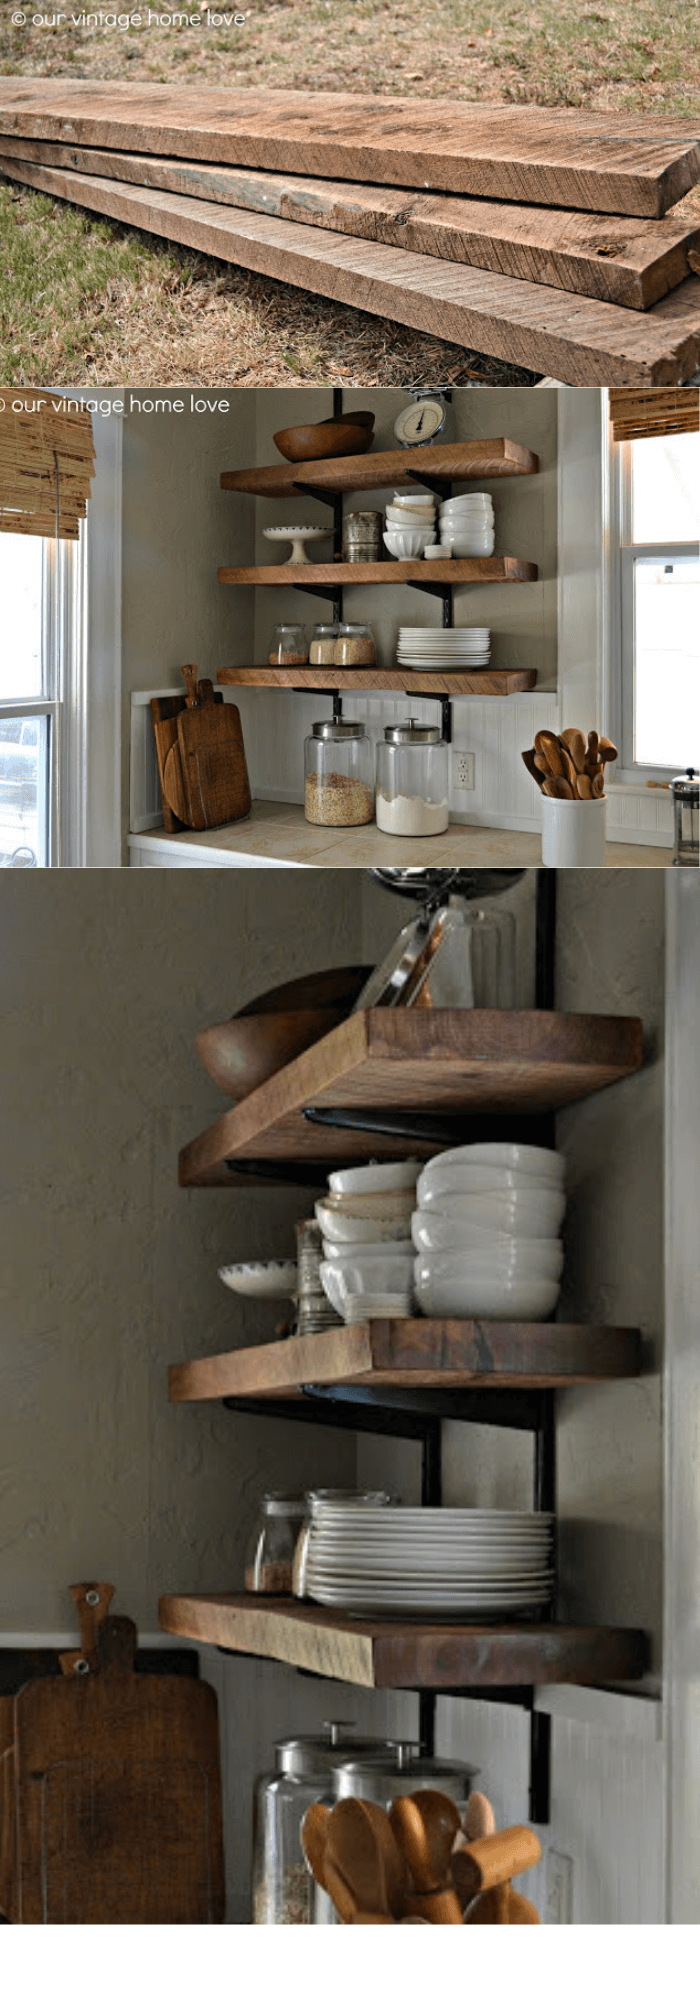 Kitchen Decor Projects With Reclaimed Wood Reclaimed Wood Kitchen Shelving